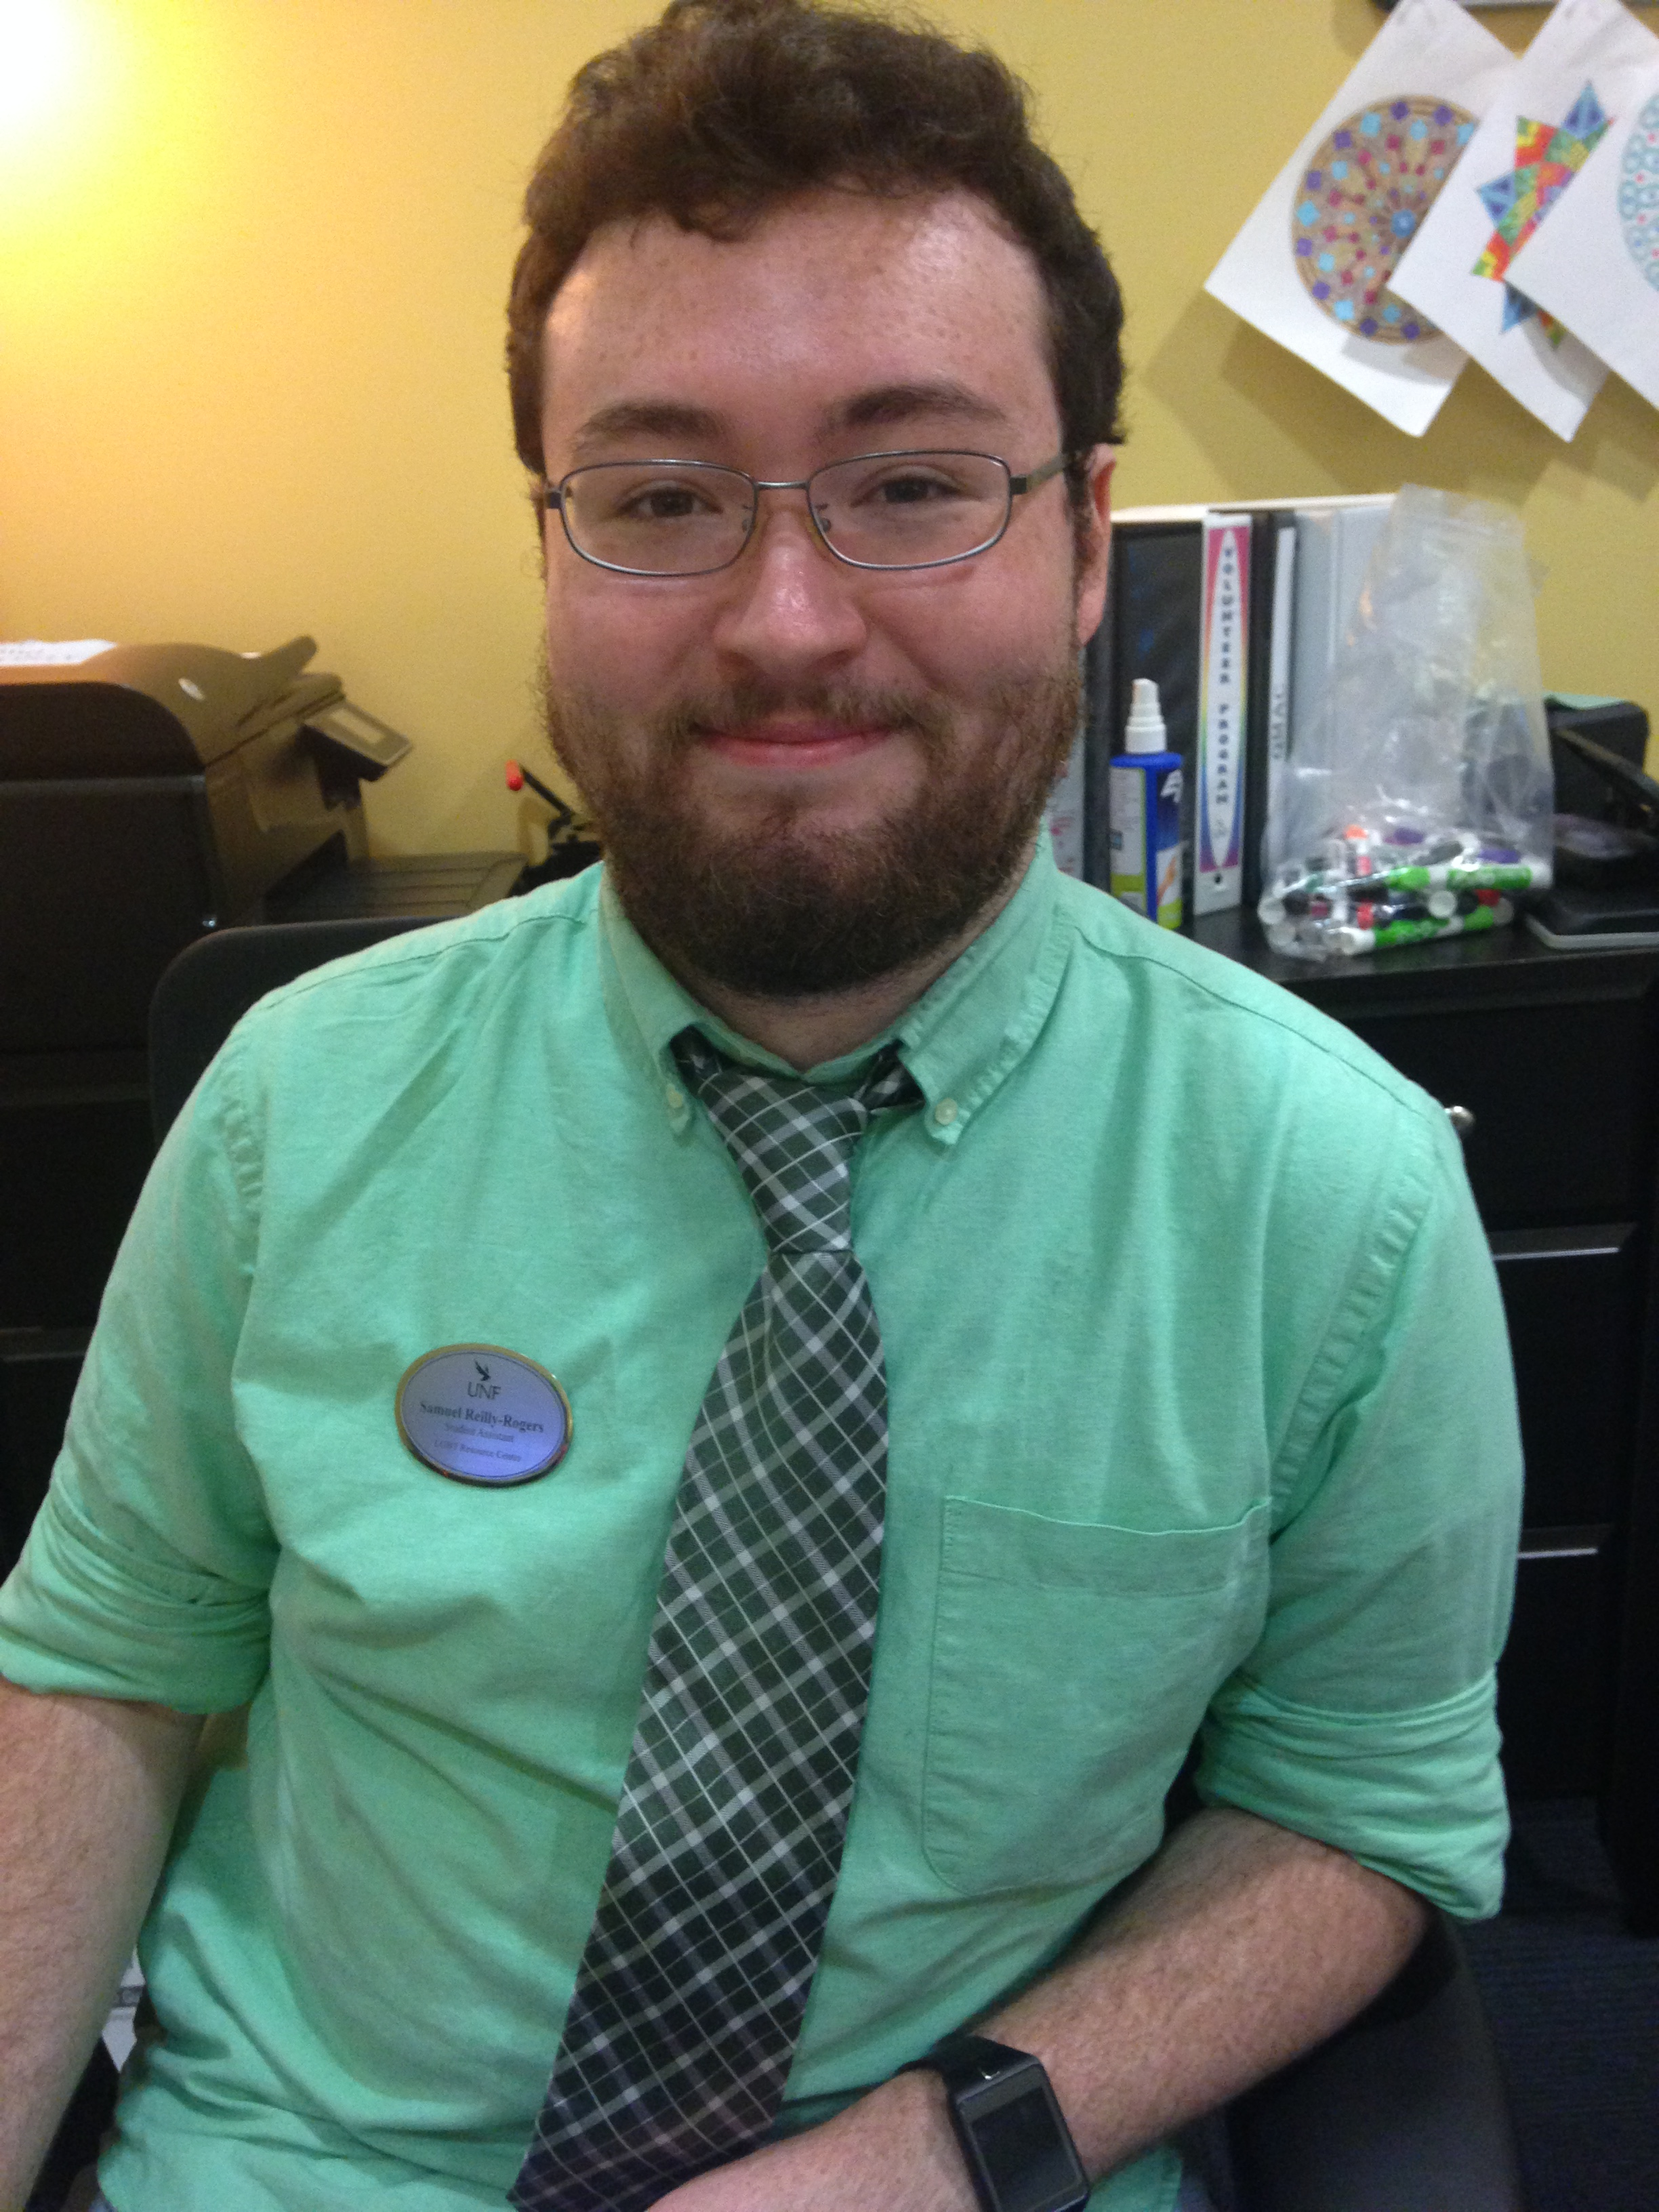 Samuel Reilly-Rogers in a green button-down shirt and a tie at his desk in the LGBT Resource Center